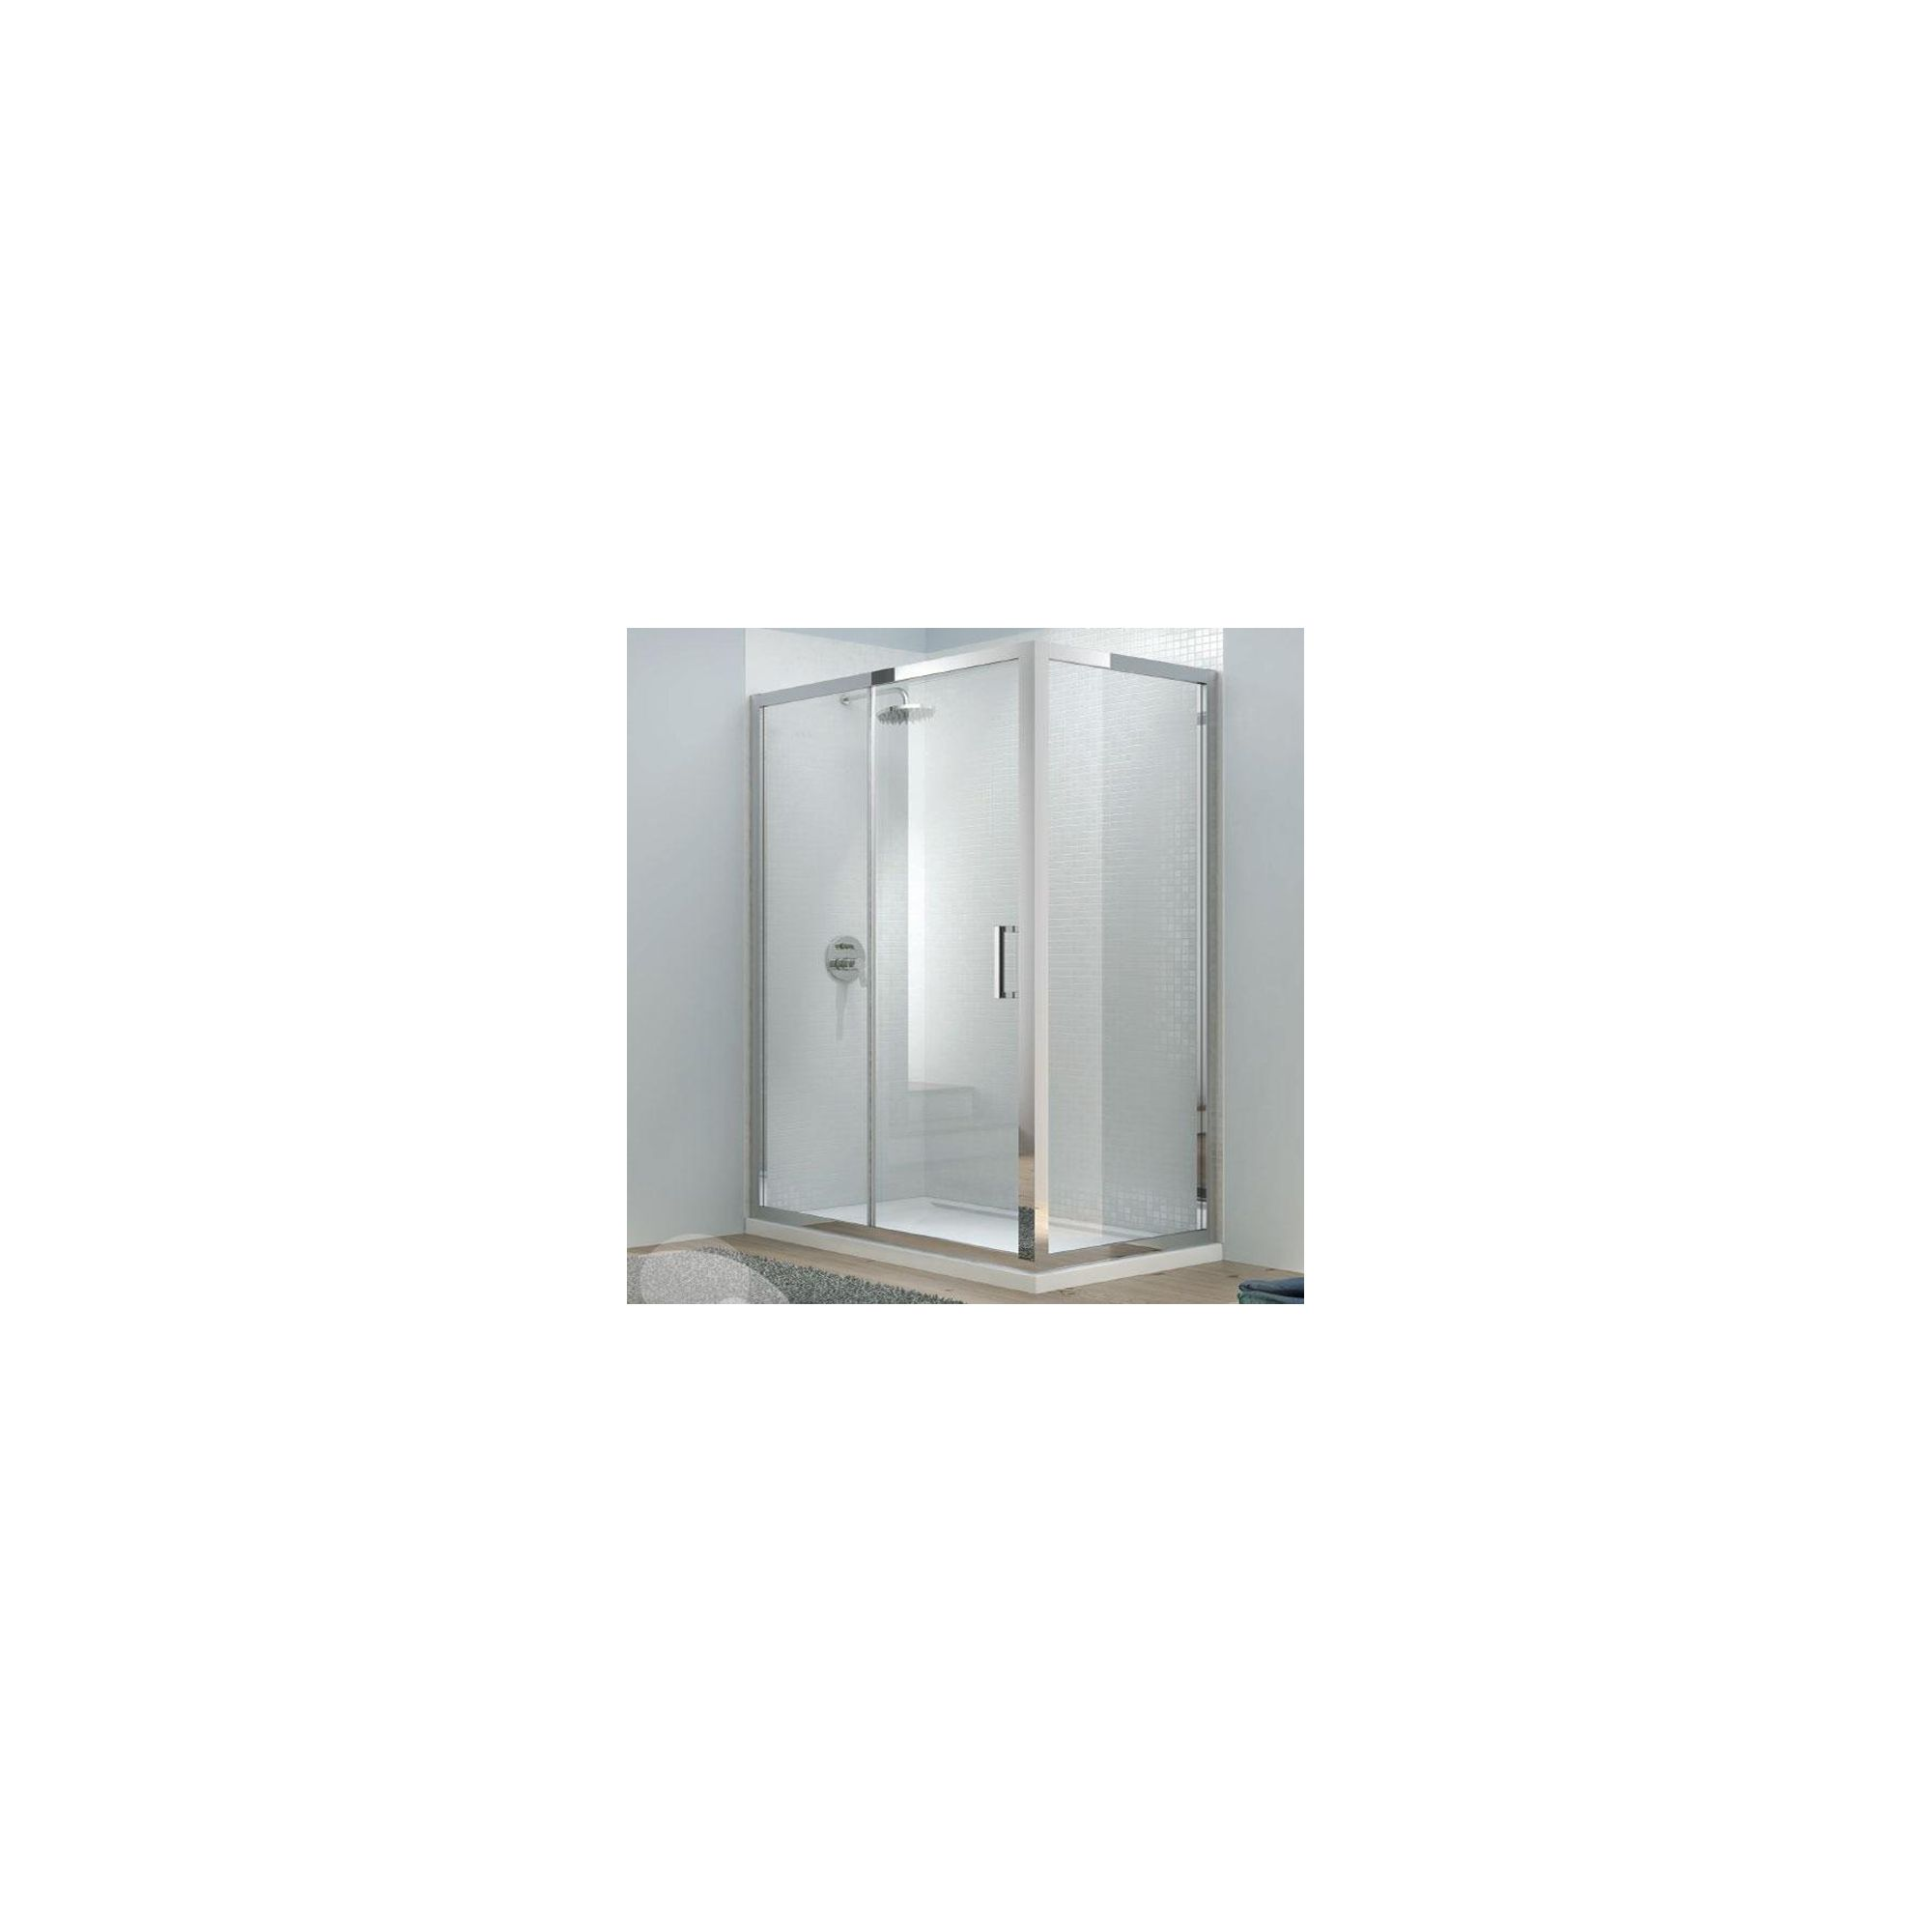 Merlyn Vivid Eight Sliding Shower Door, 1000mm Wide, 8mm Glass at Tesco Direct